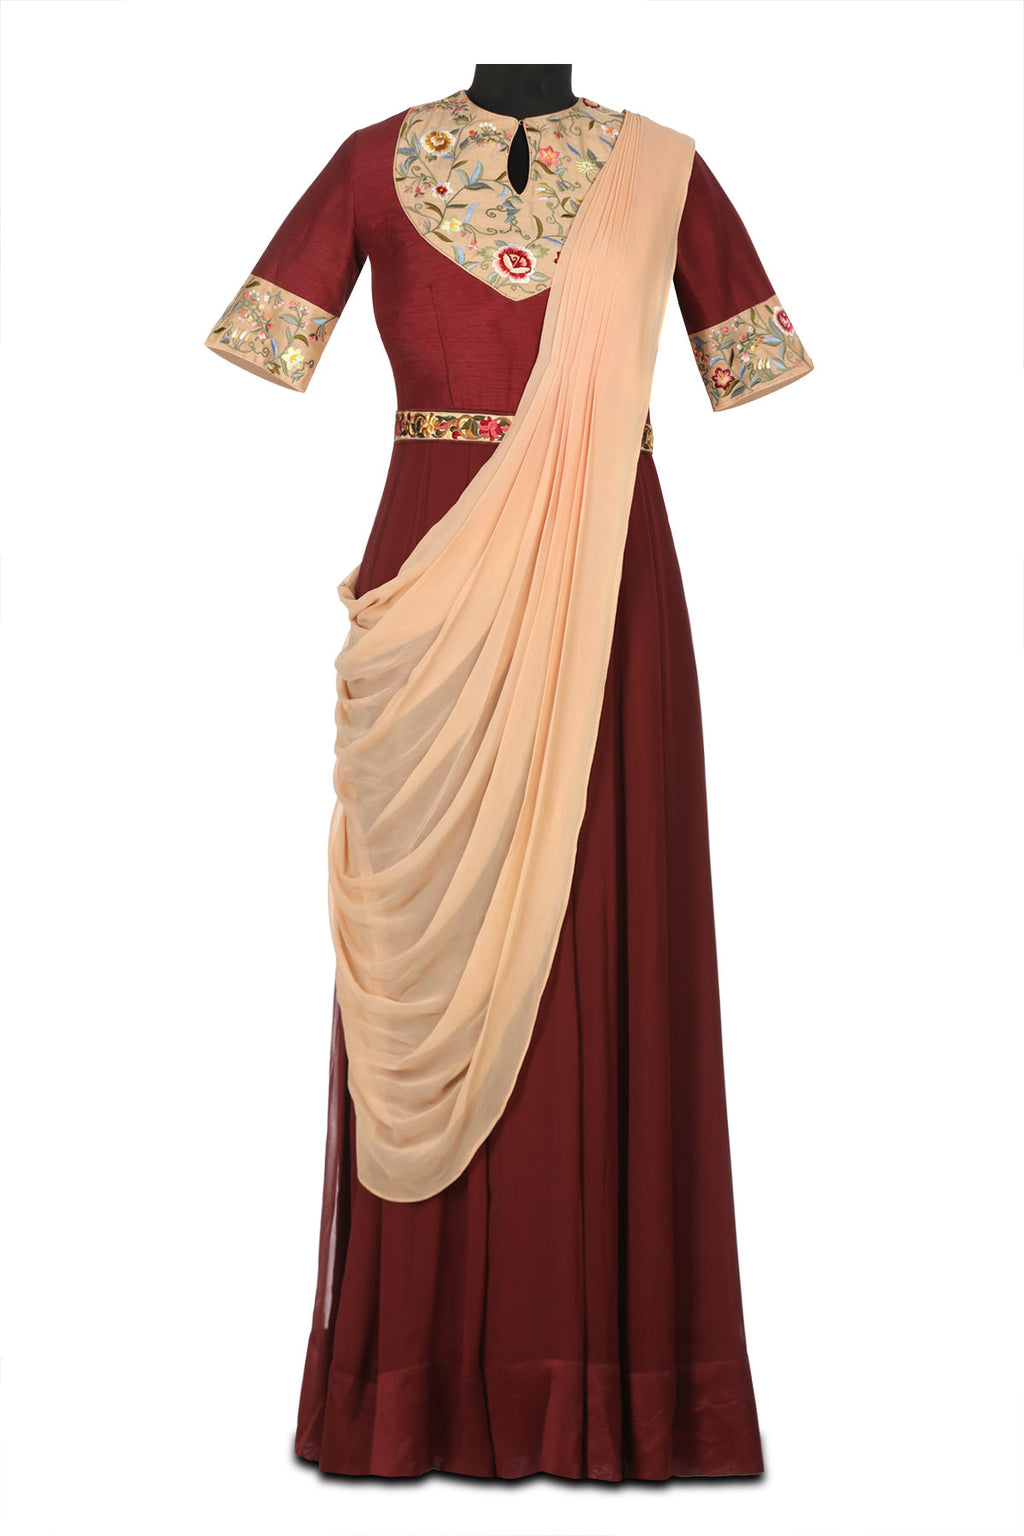 50Z180-RO Burgundy and Peach Georgette Anarkali with Parsi Embroidery